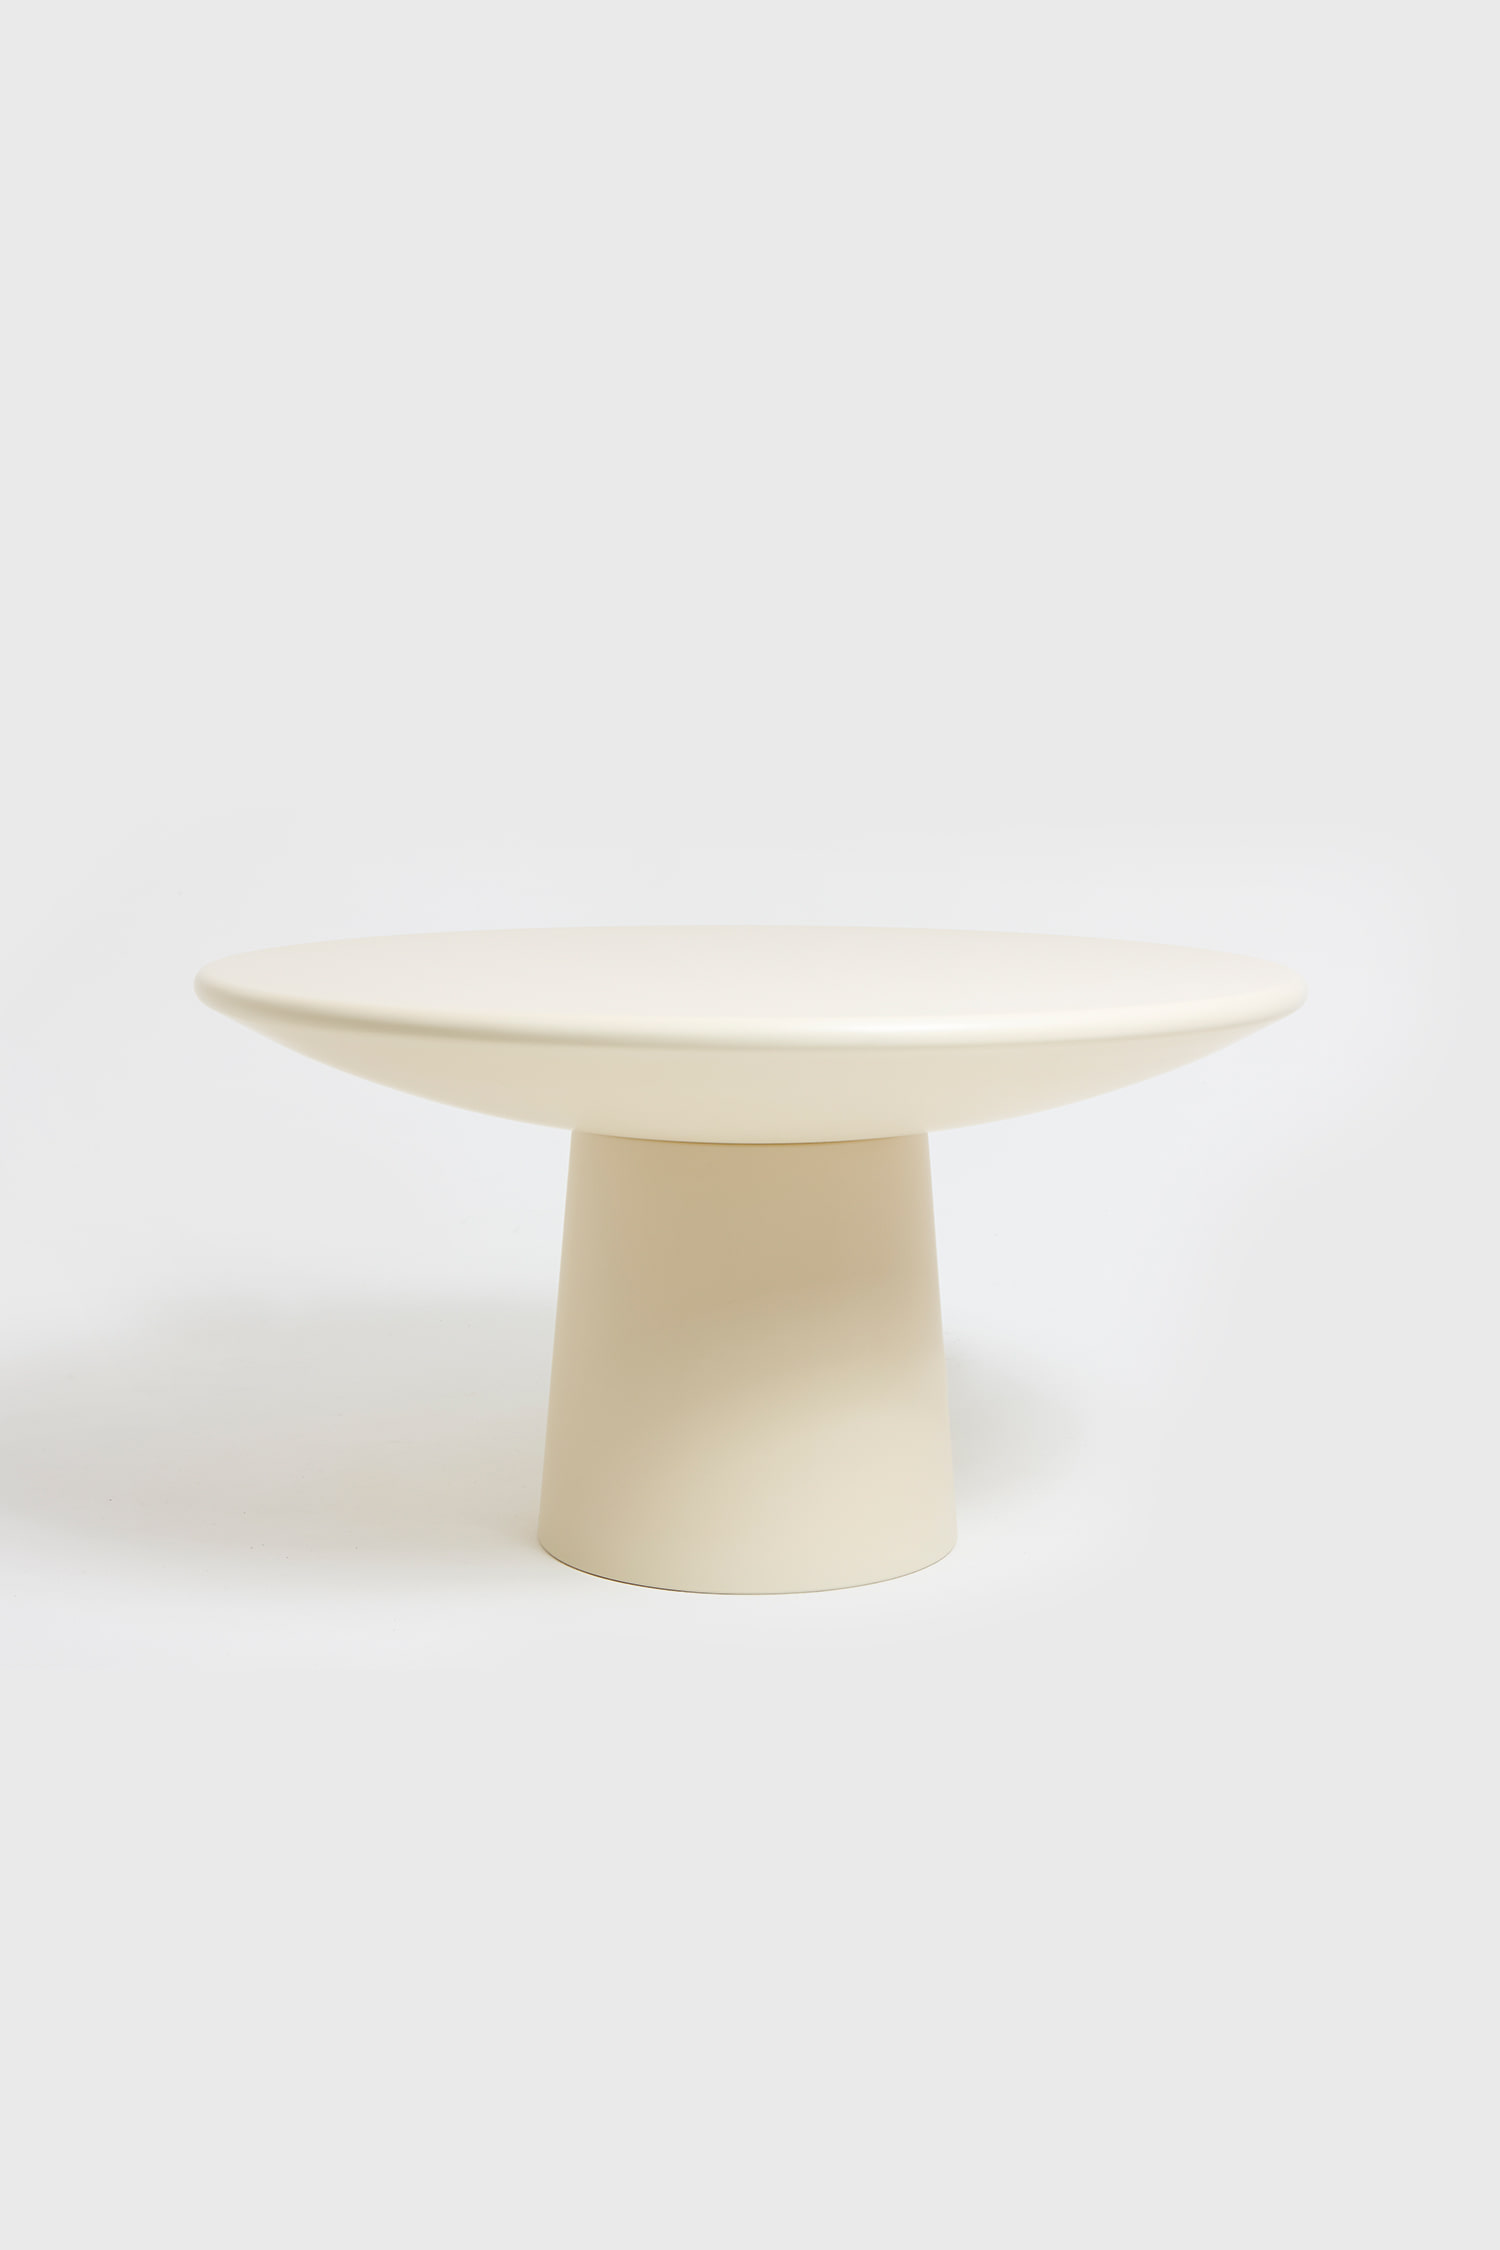 Roly Poly Dining Table